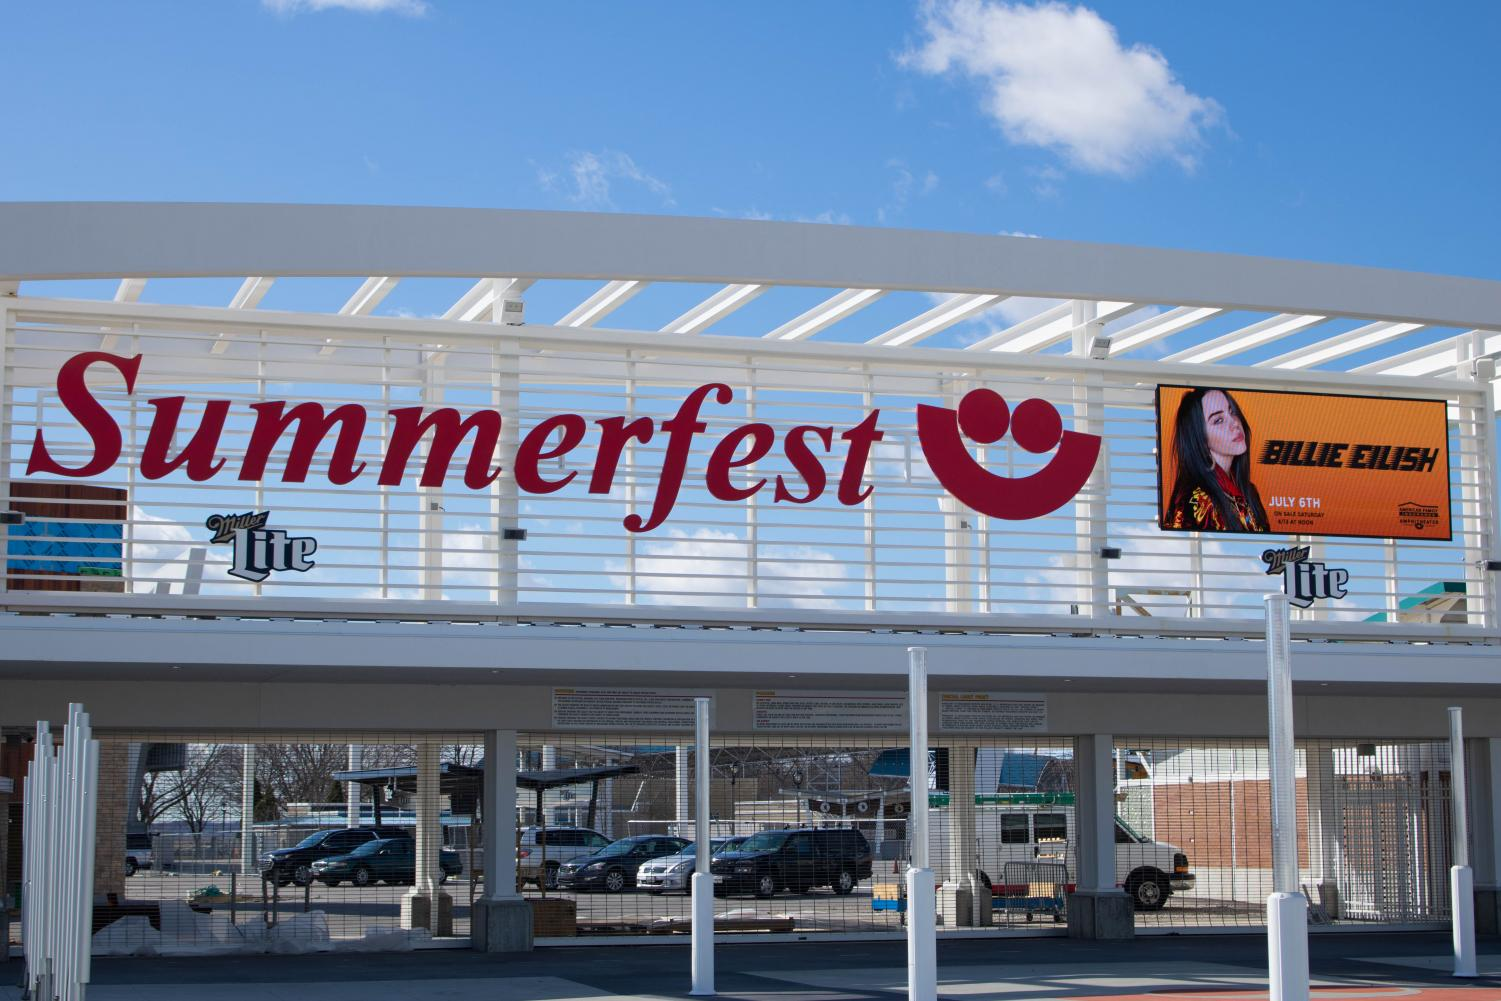 Summerfest will take place from June 26-30 and July 2-7 this year.